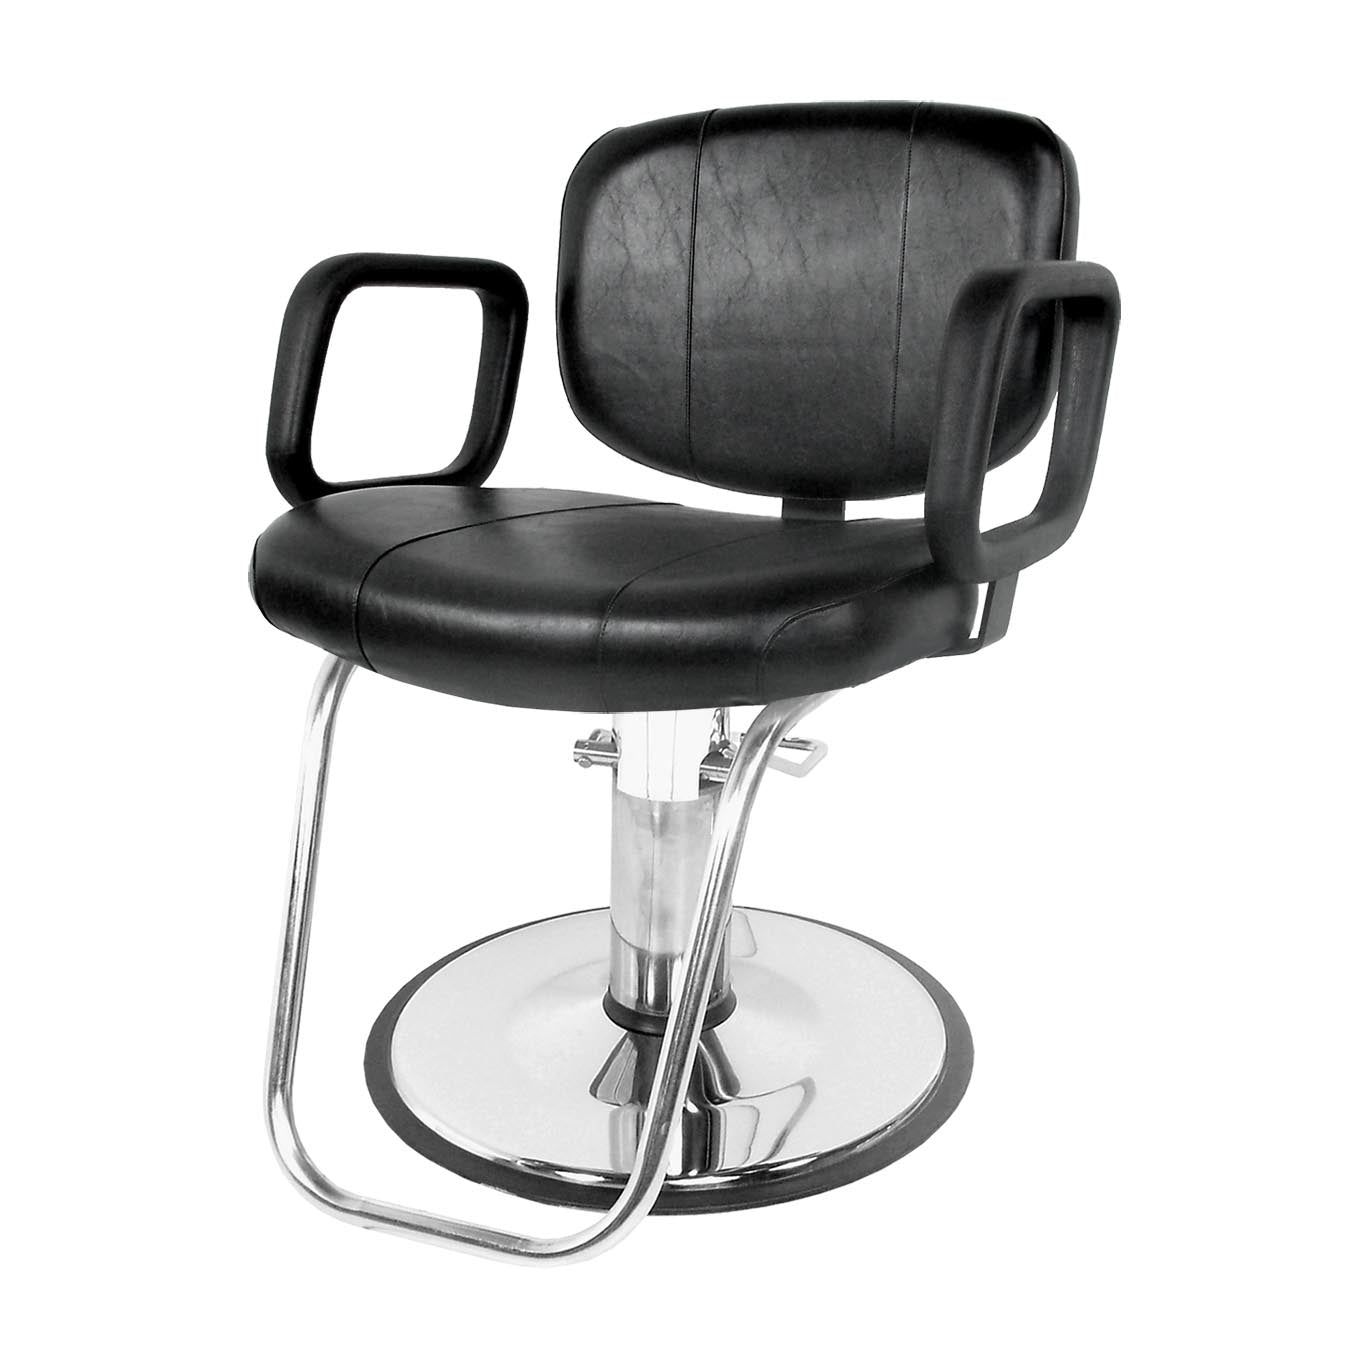 Cody Styling Chair - Collins